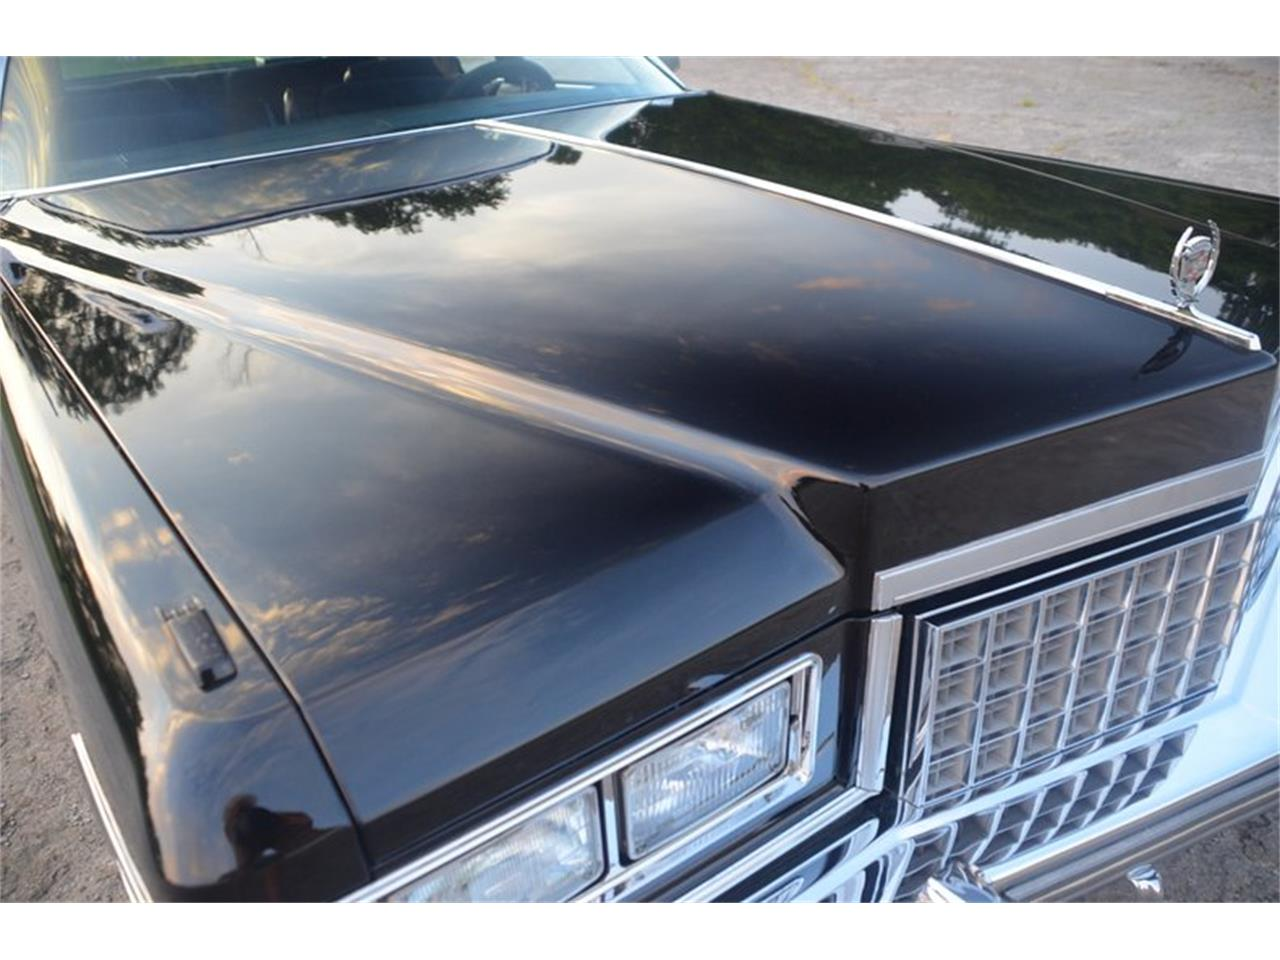 Large Picture of 1976 Cadillac Brougham located in Tennessee - $14,500.00 Offered by Frazier Motor Car Company - NUFI